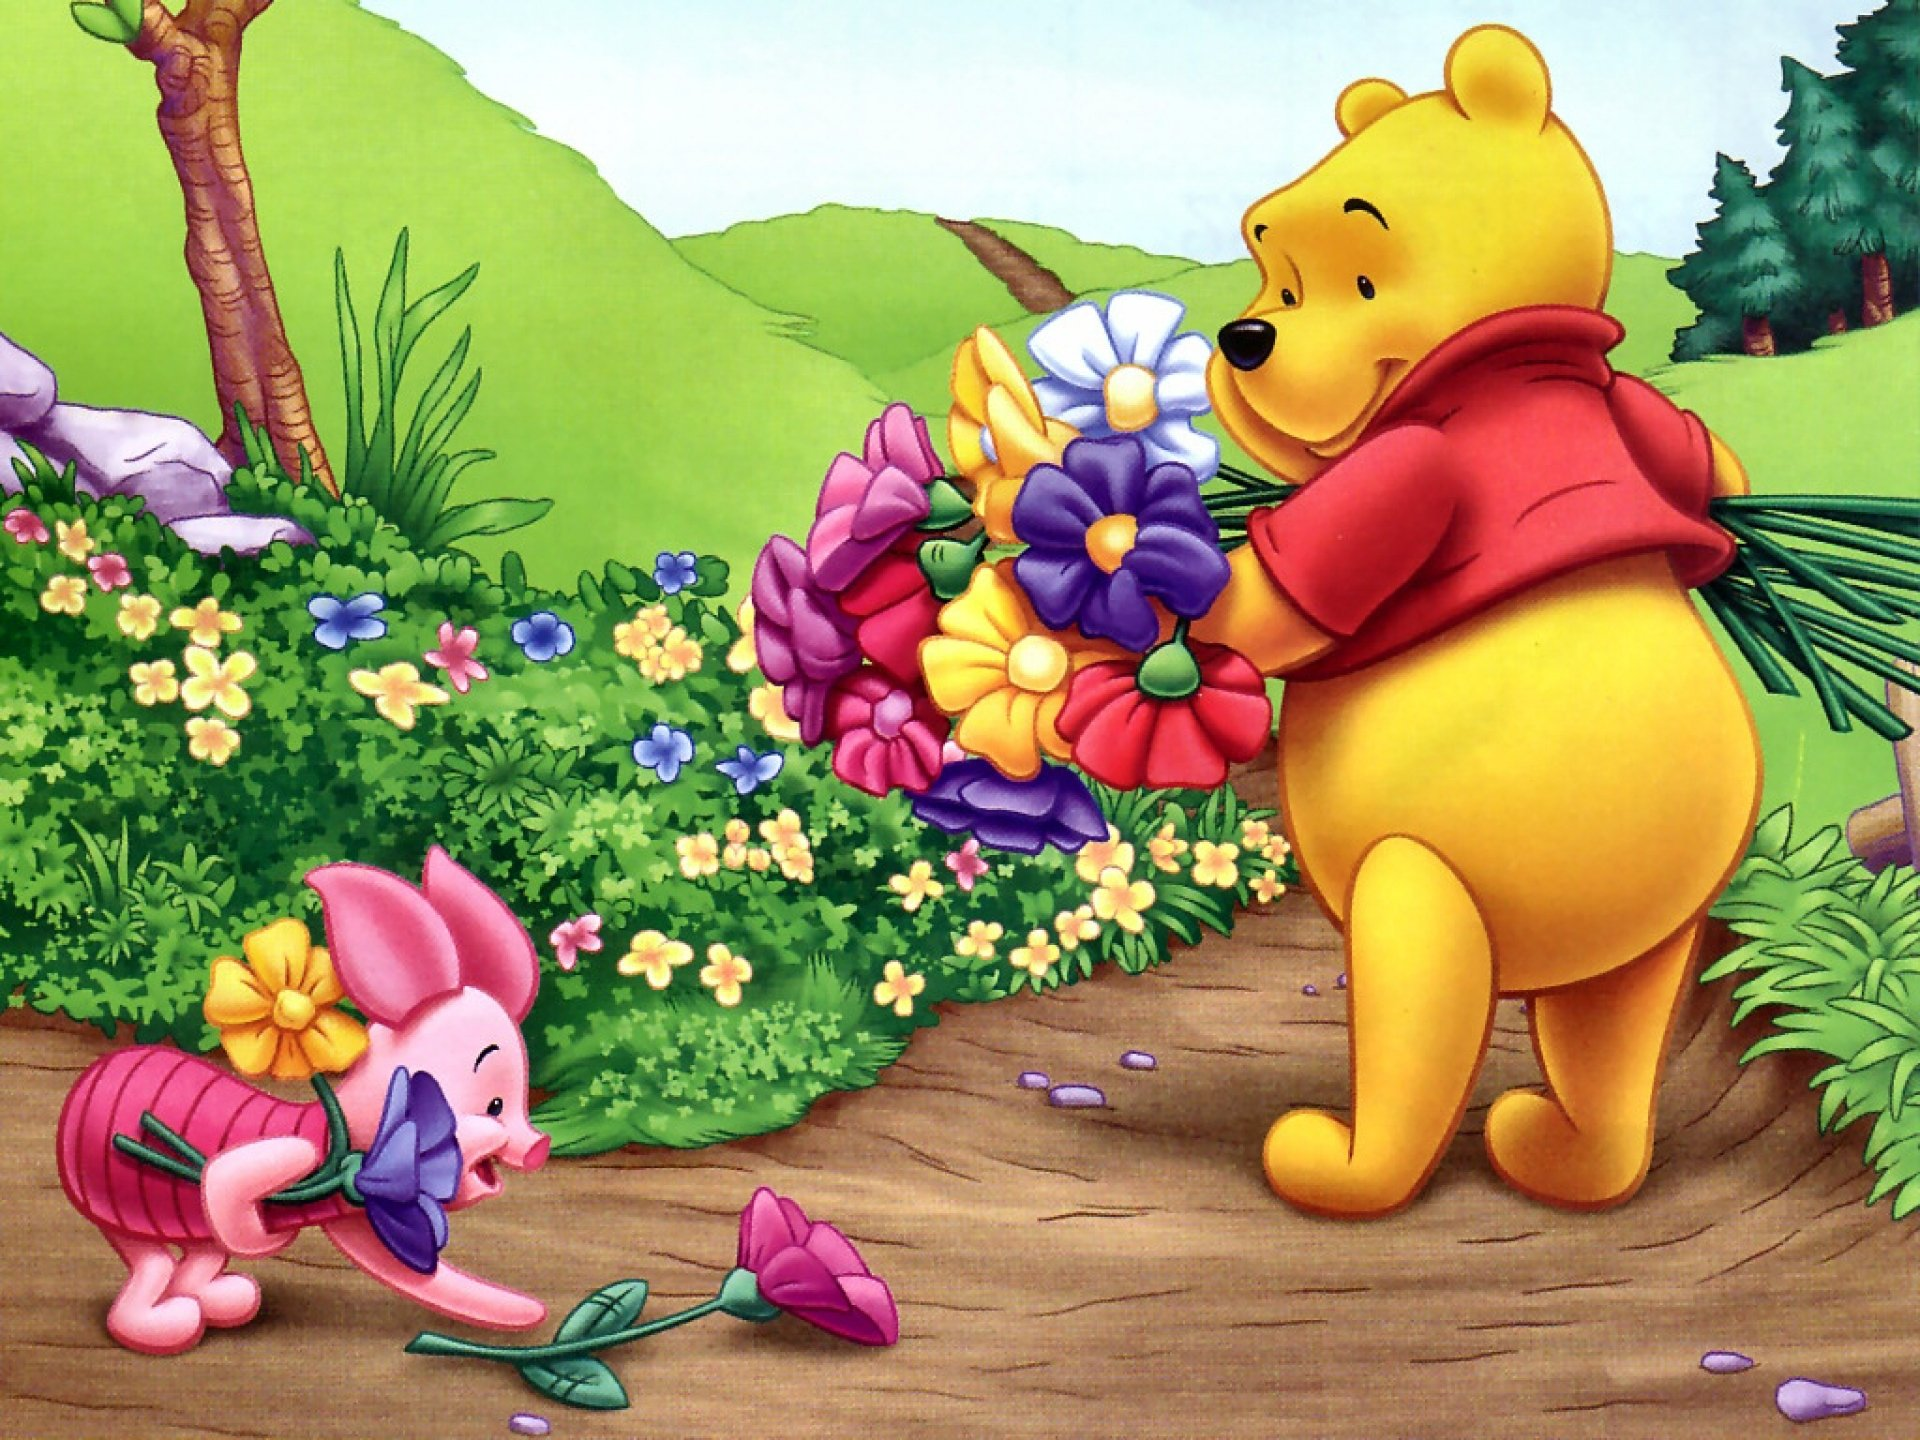 83 winnie the pooh hd wallpapers background images wallpaper abyss hd wallpaper background image id498058 voltagebd Gallery